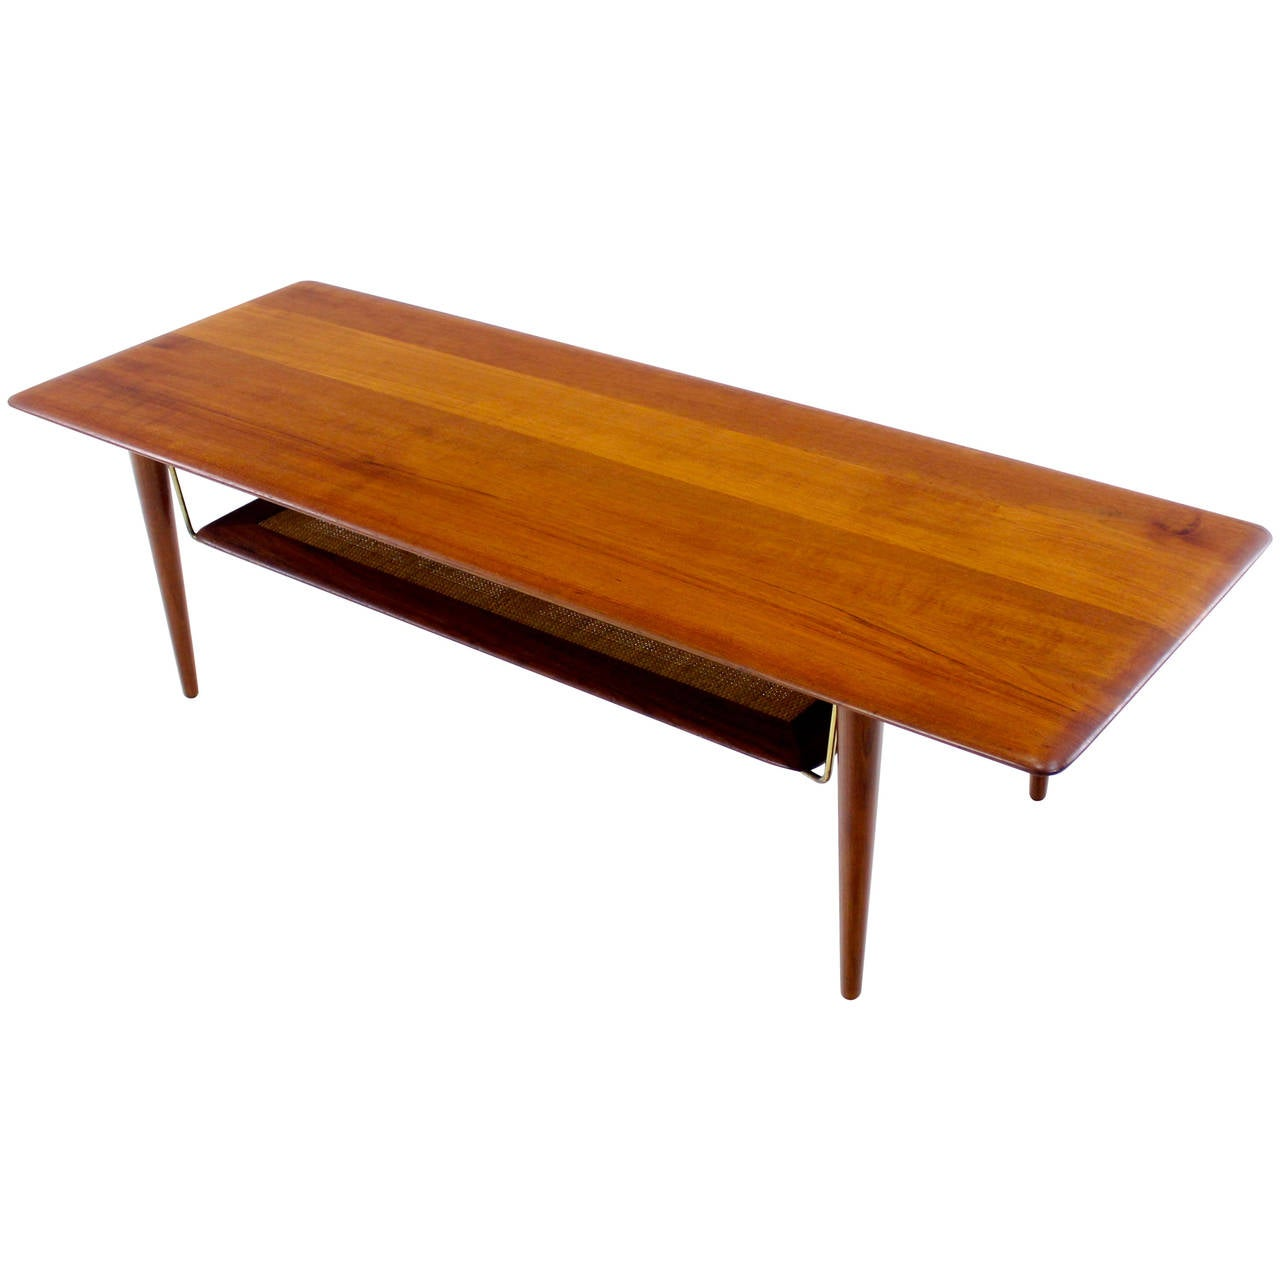 Danish modern teak coffee table designed by peter hvidt at 1stdibs Modern teak coffee table